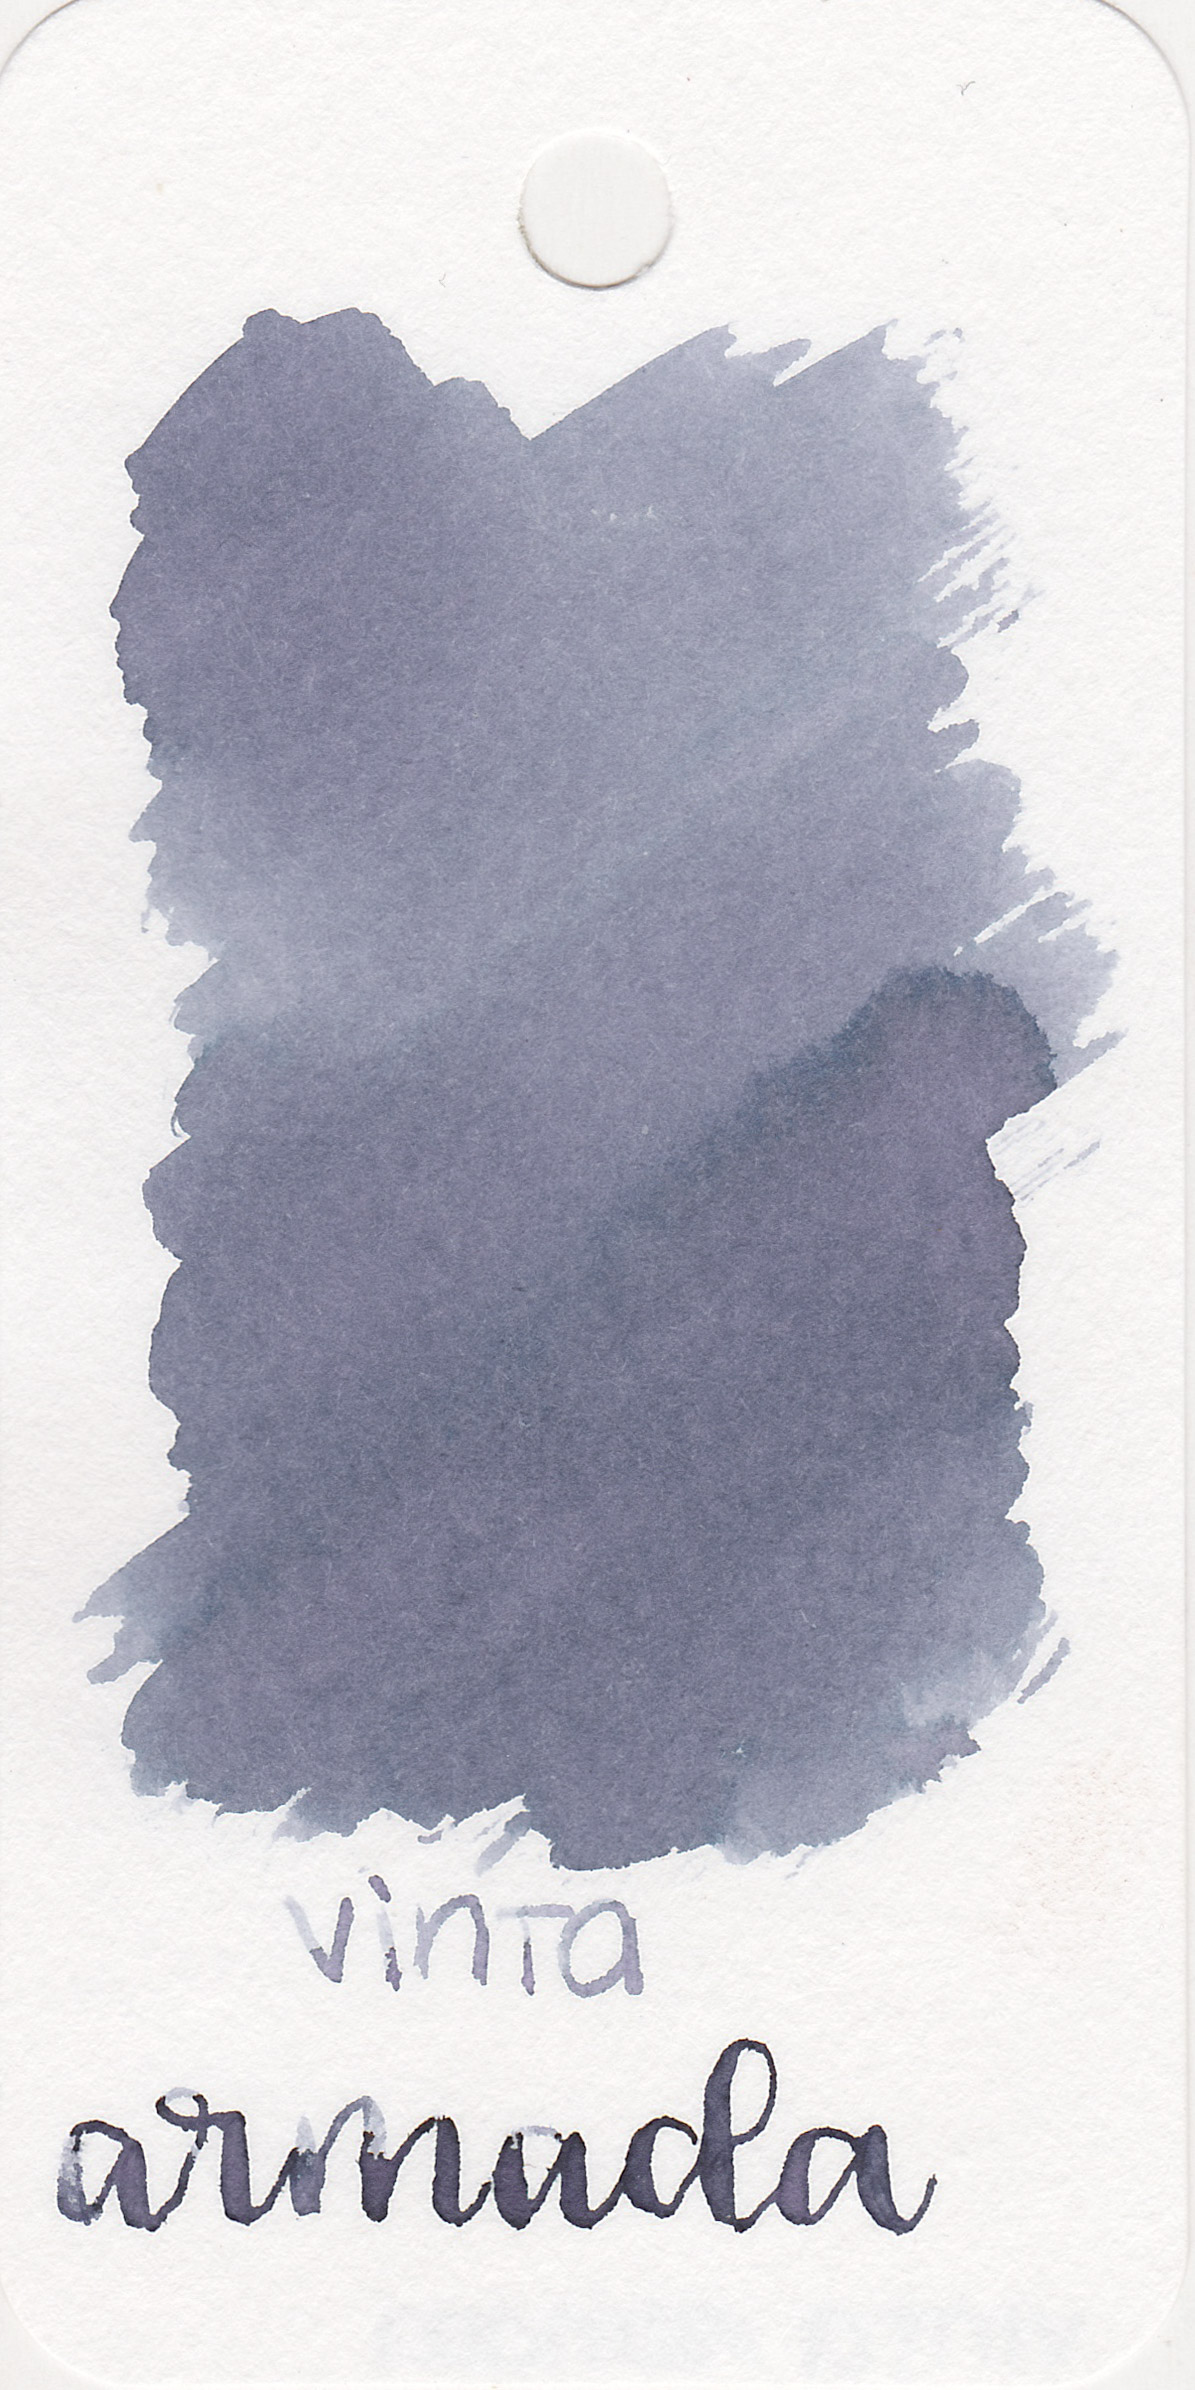 The color: - Armada is a greyish-purple. Depending on the lighting it can look more grey or purple.